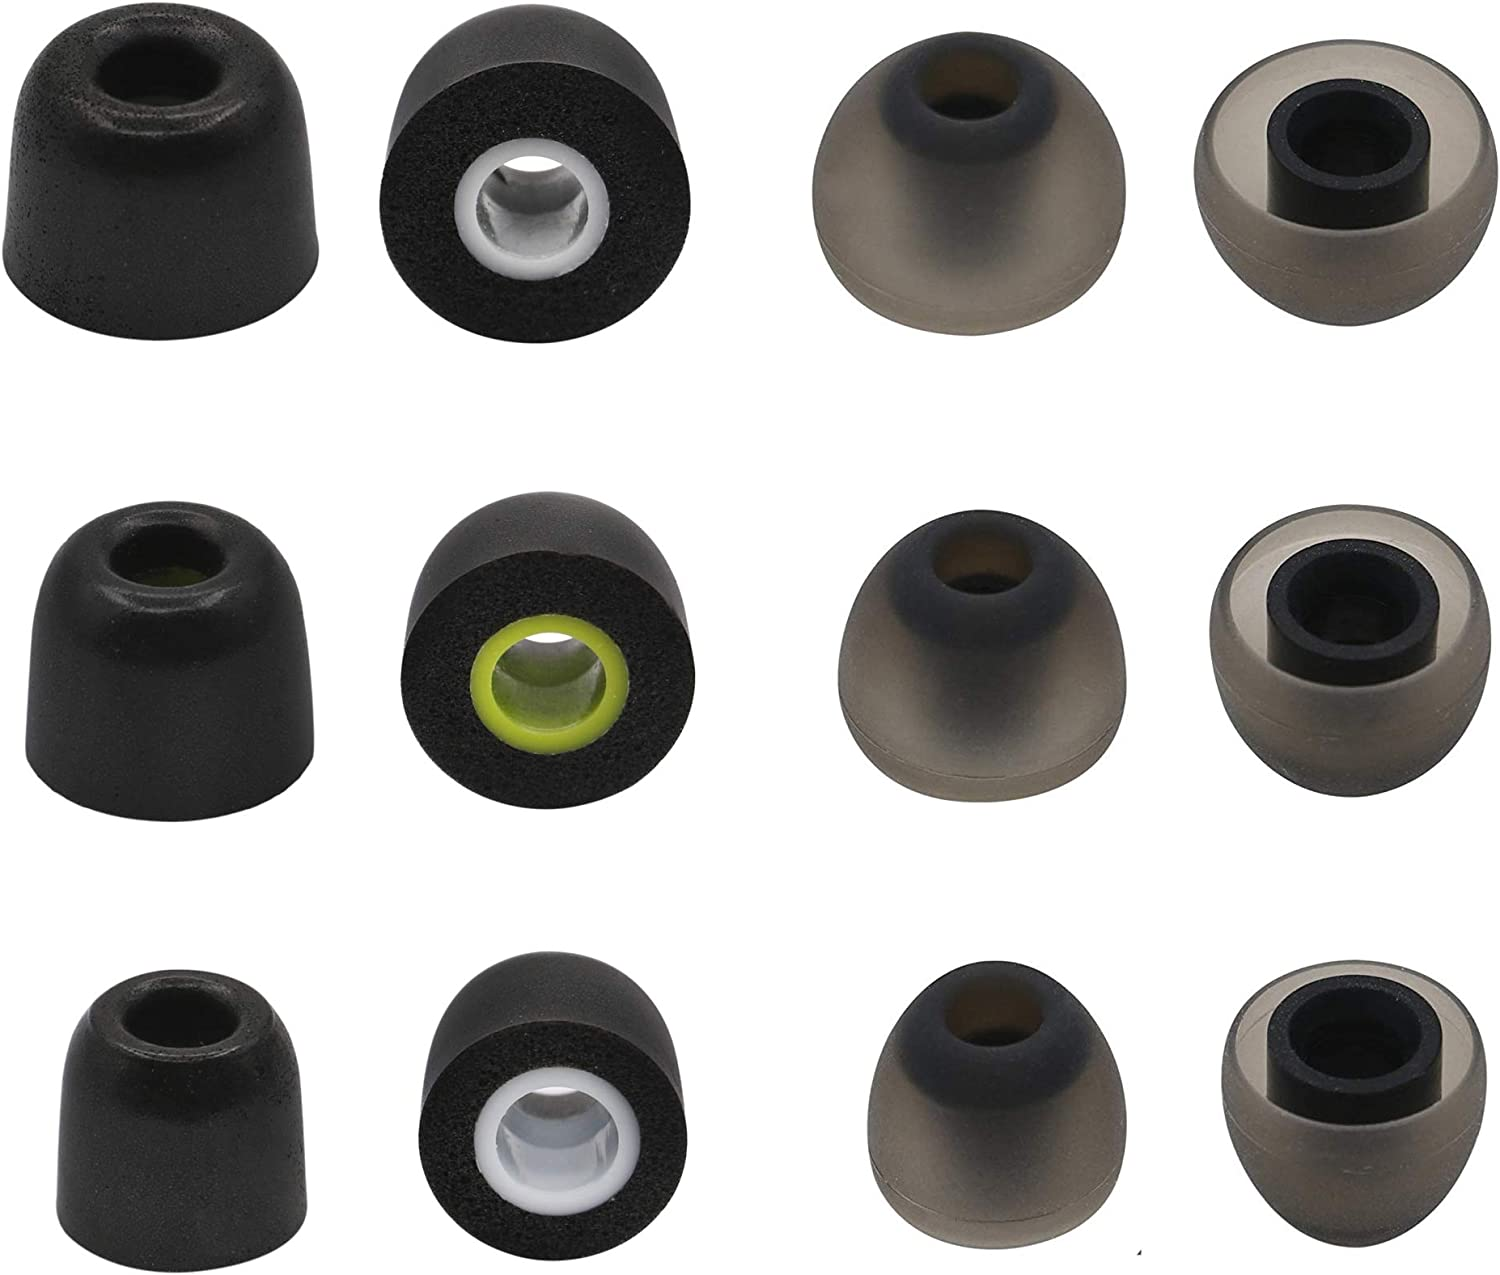 6 Pair Gray S//M//L 3 Sizes 6 Pairs Soft Noise-Isolation Silicone Replacement Earbud Tips Fit for Jaybird Bluebuds X3 X2 X Earphone Bluebud X3 Tip ALXCD Eartips for Jaybird X X2 X3 Headphone